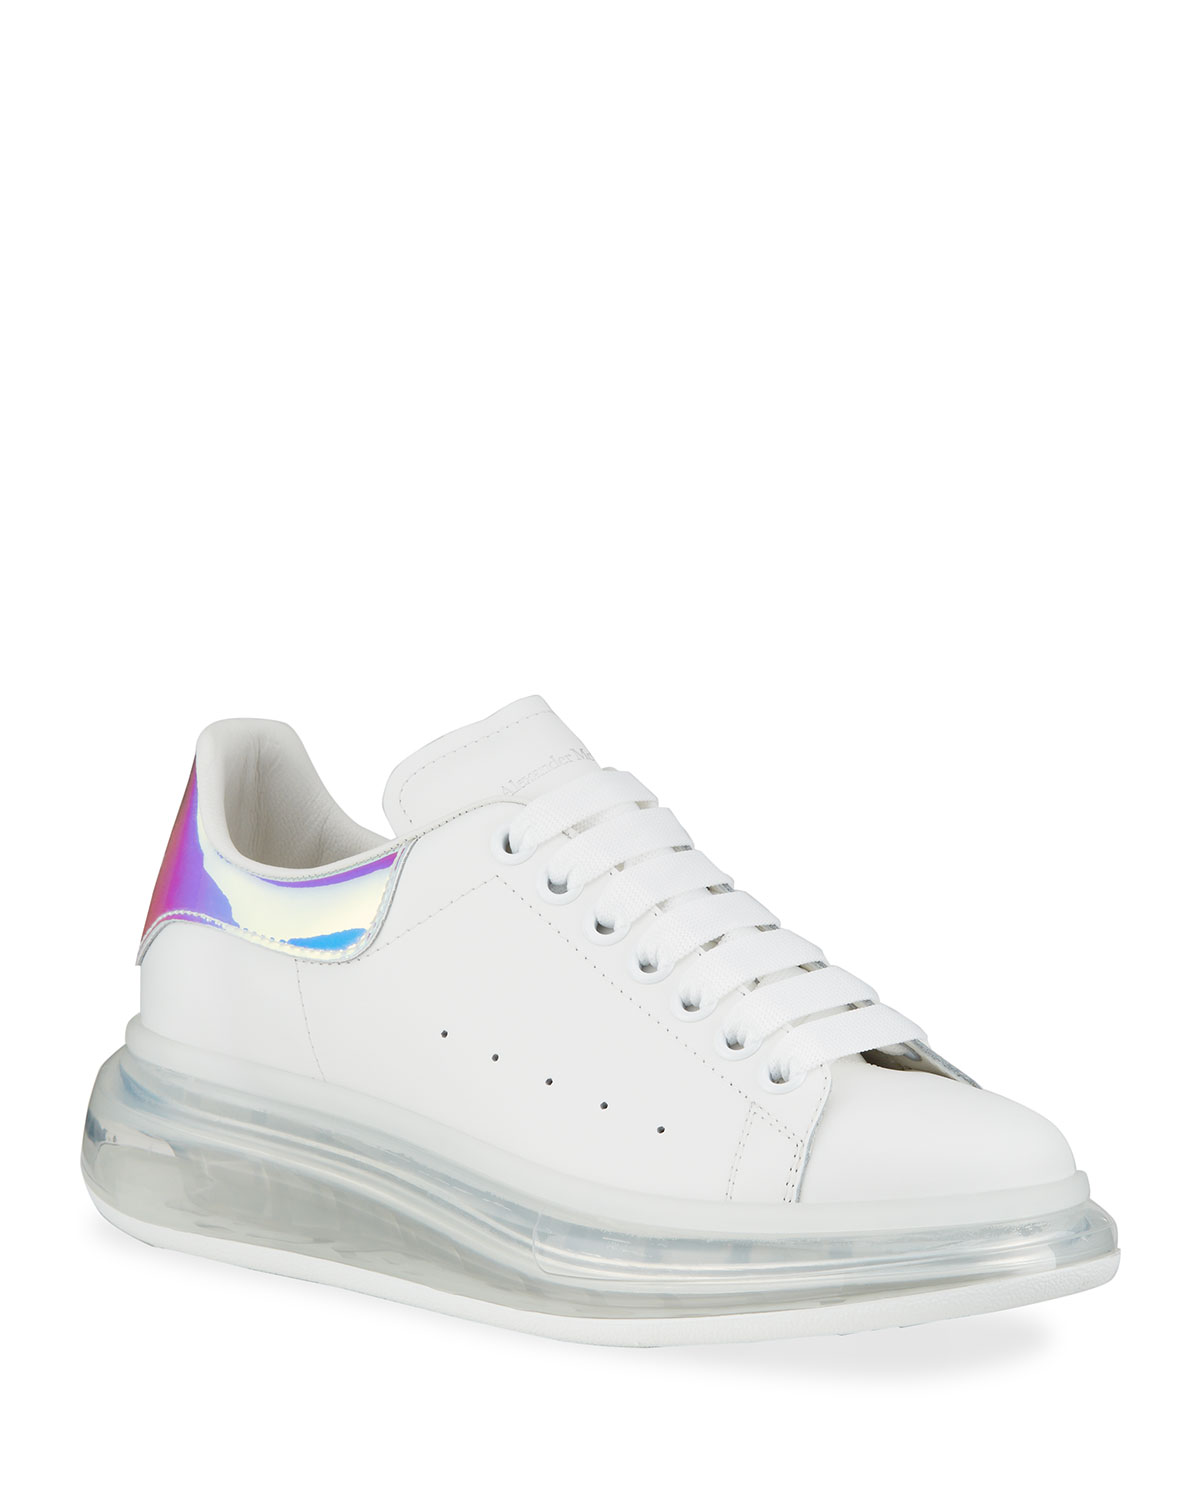 Transparent Oversized Sneakers